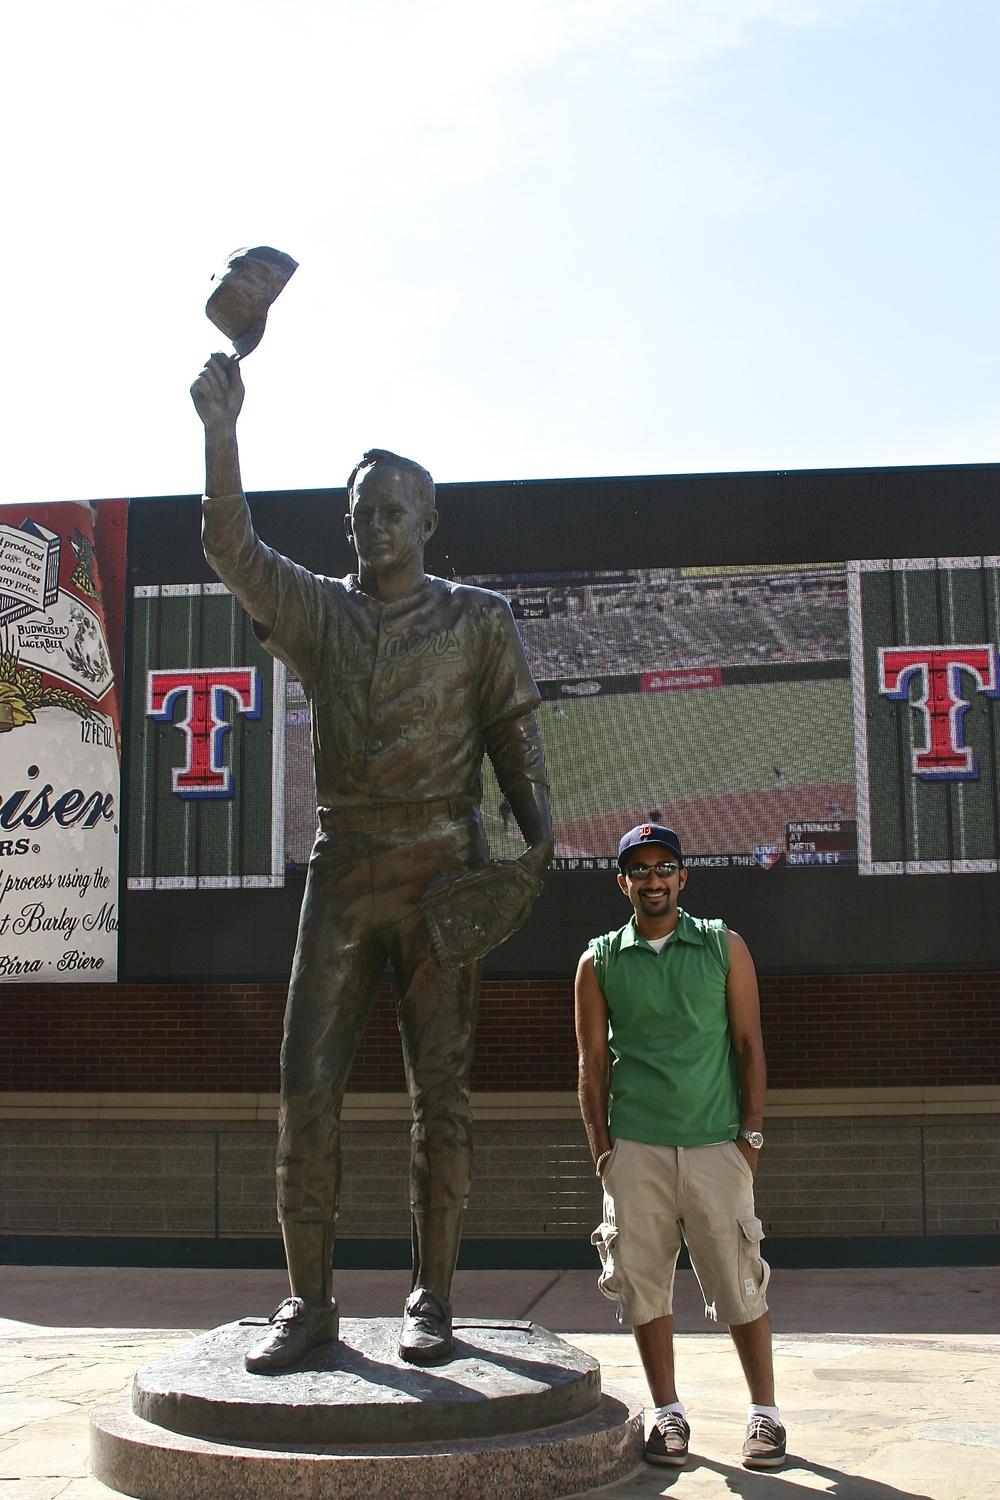 Me and Nolan Ryan